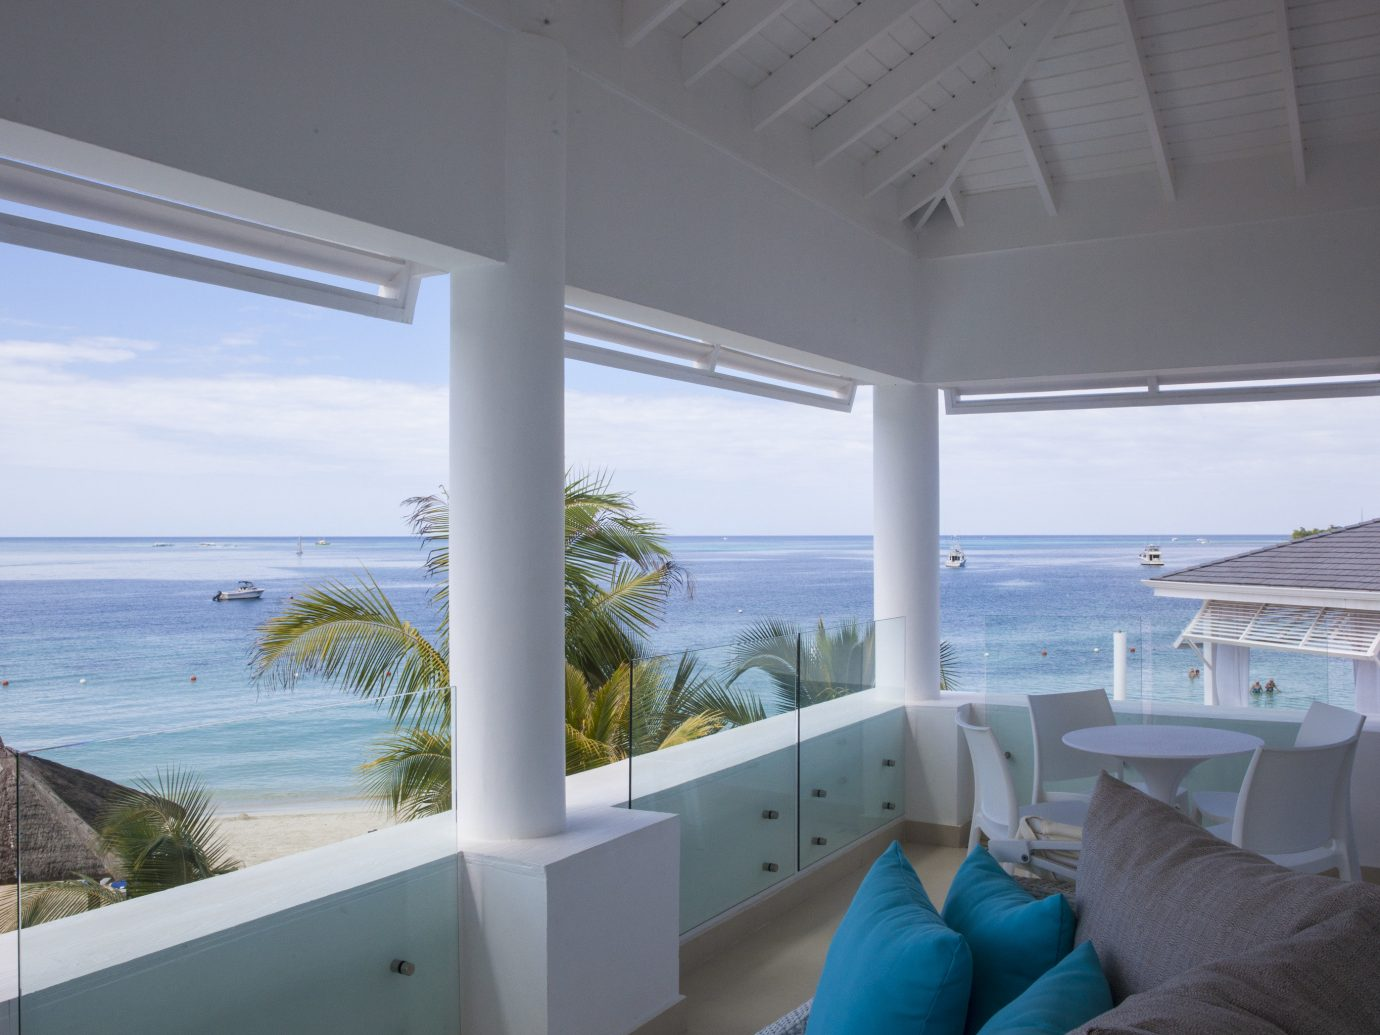 All-Inclusive Resorts Budget Hotels indoor window ceiling property room house Living vacation estate home swimming pool Villa caribbean overlooking condominium interior design real estate furniture apartment Resort cottage Deck porch beautiful